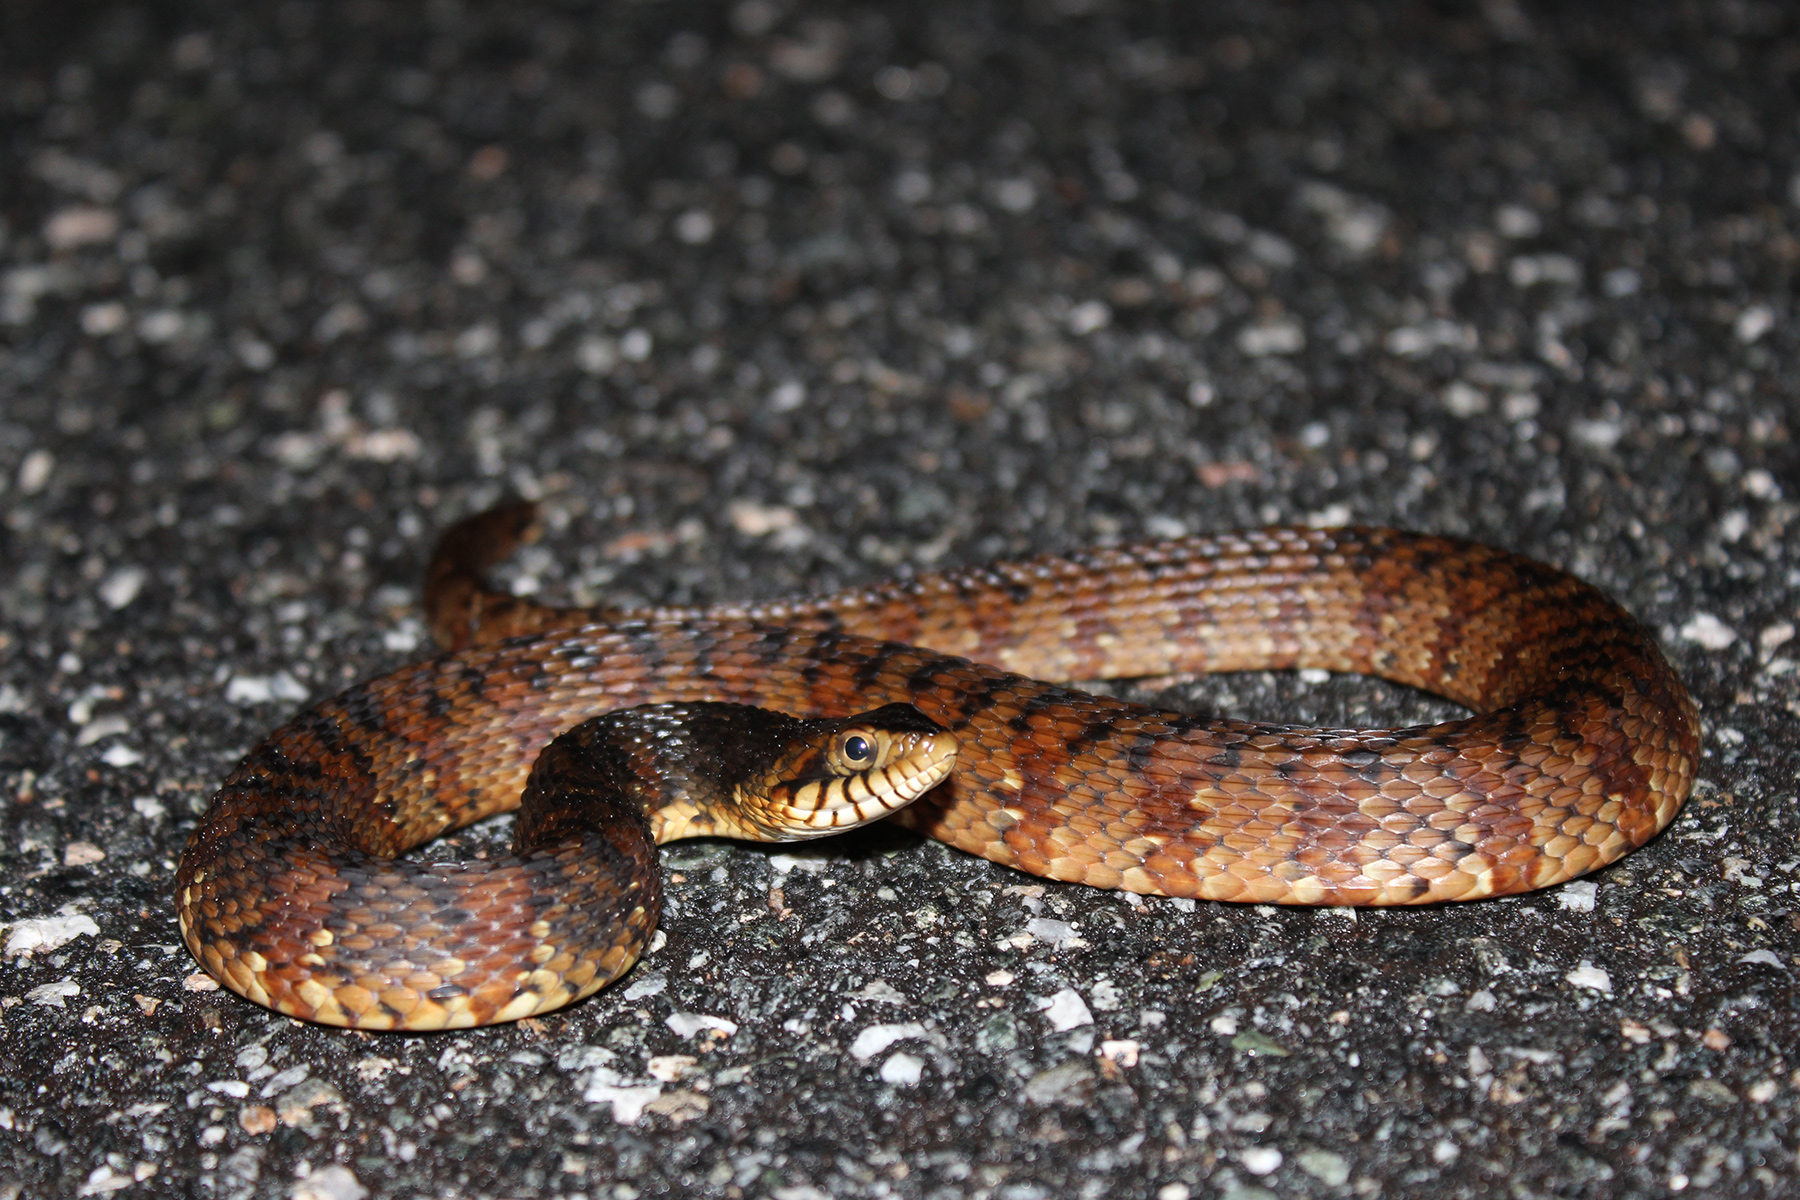 Southern watersnake with reddish color.